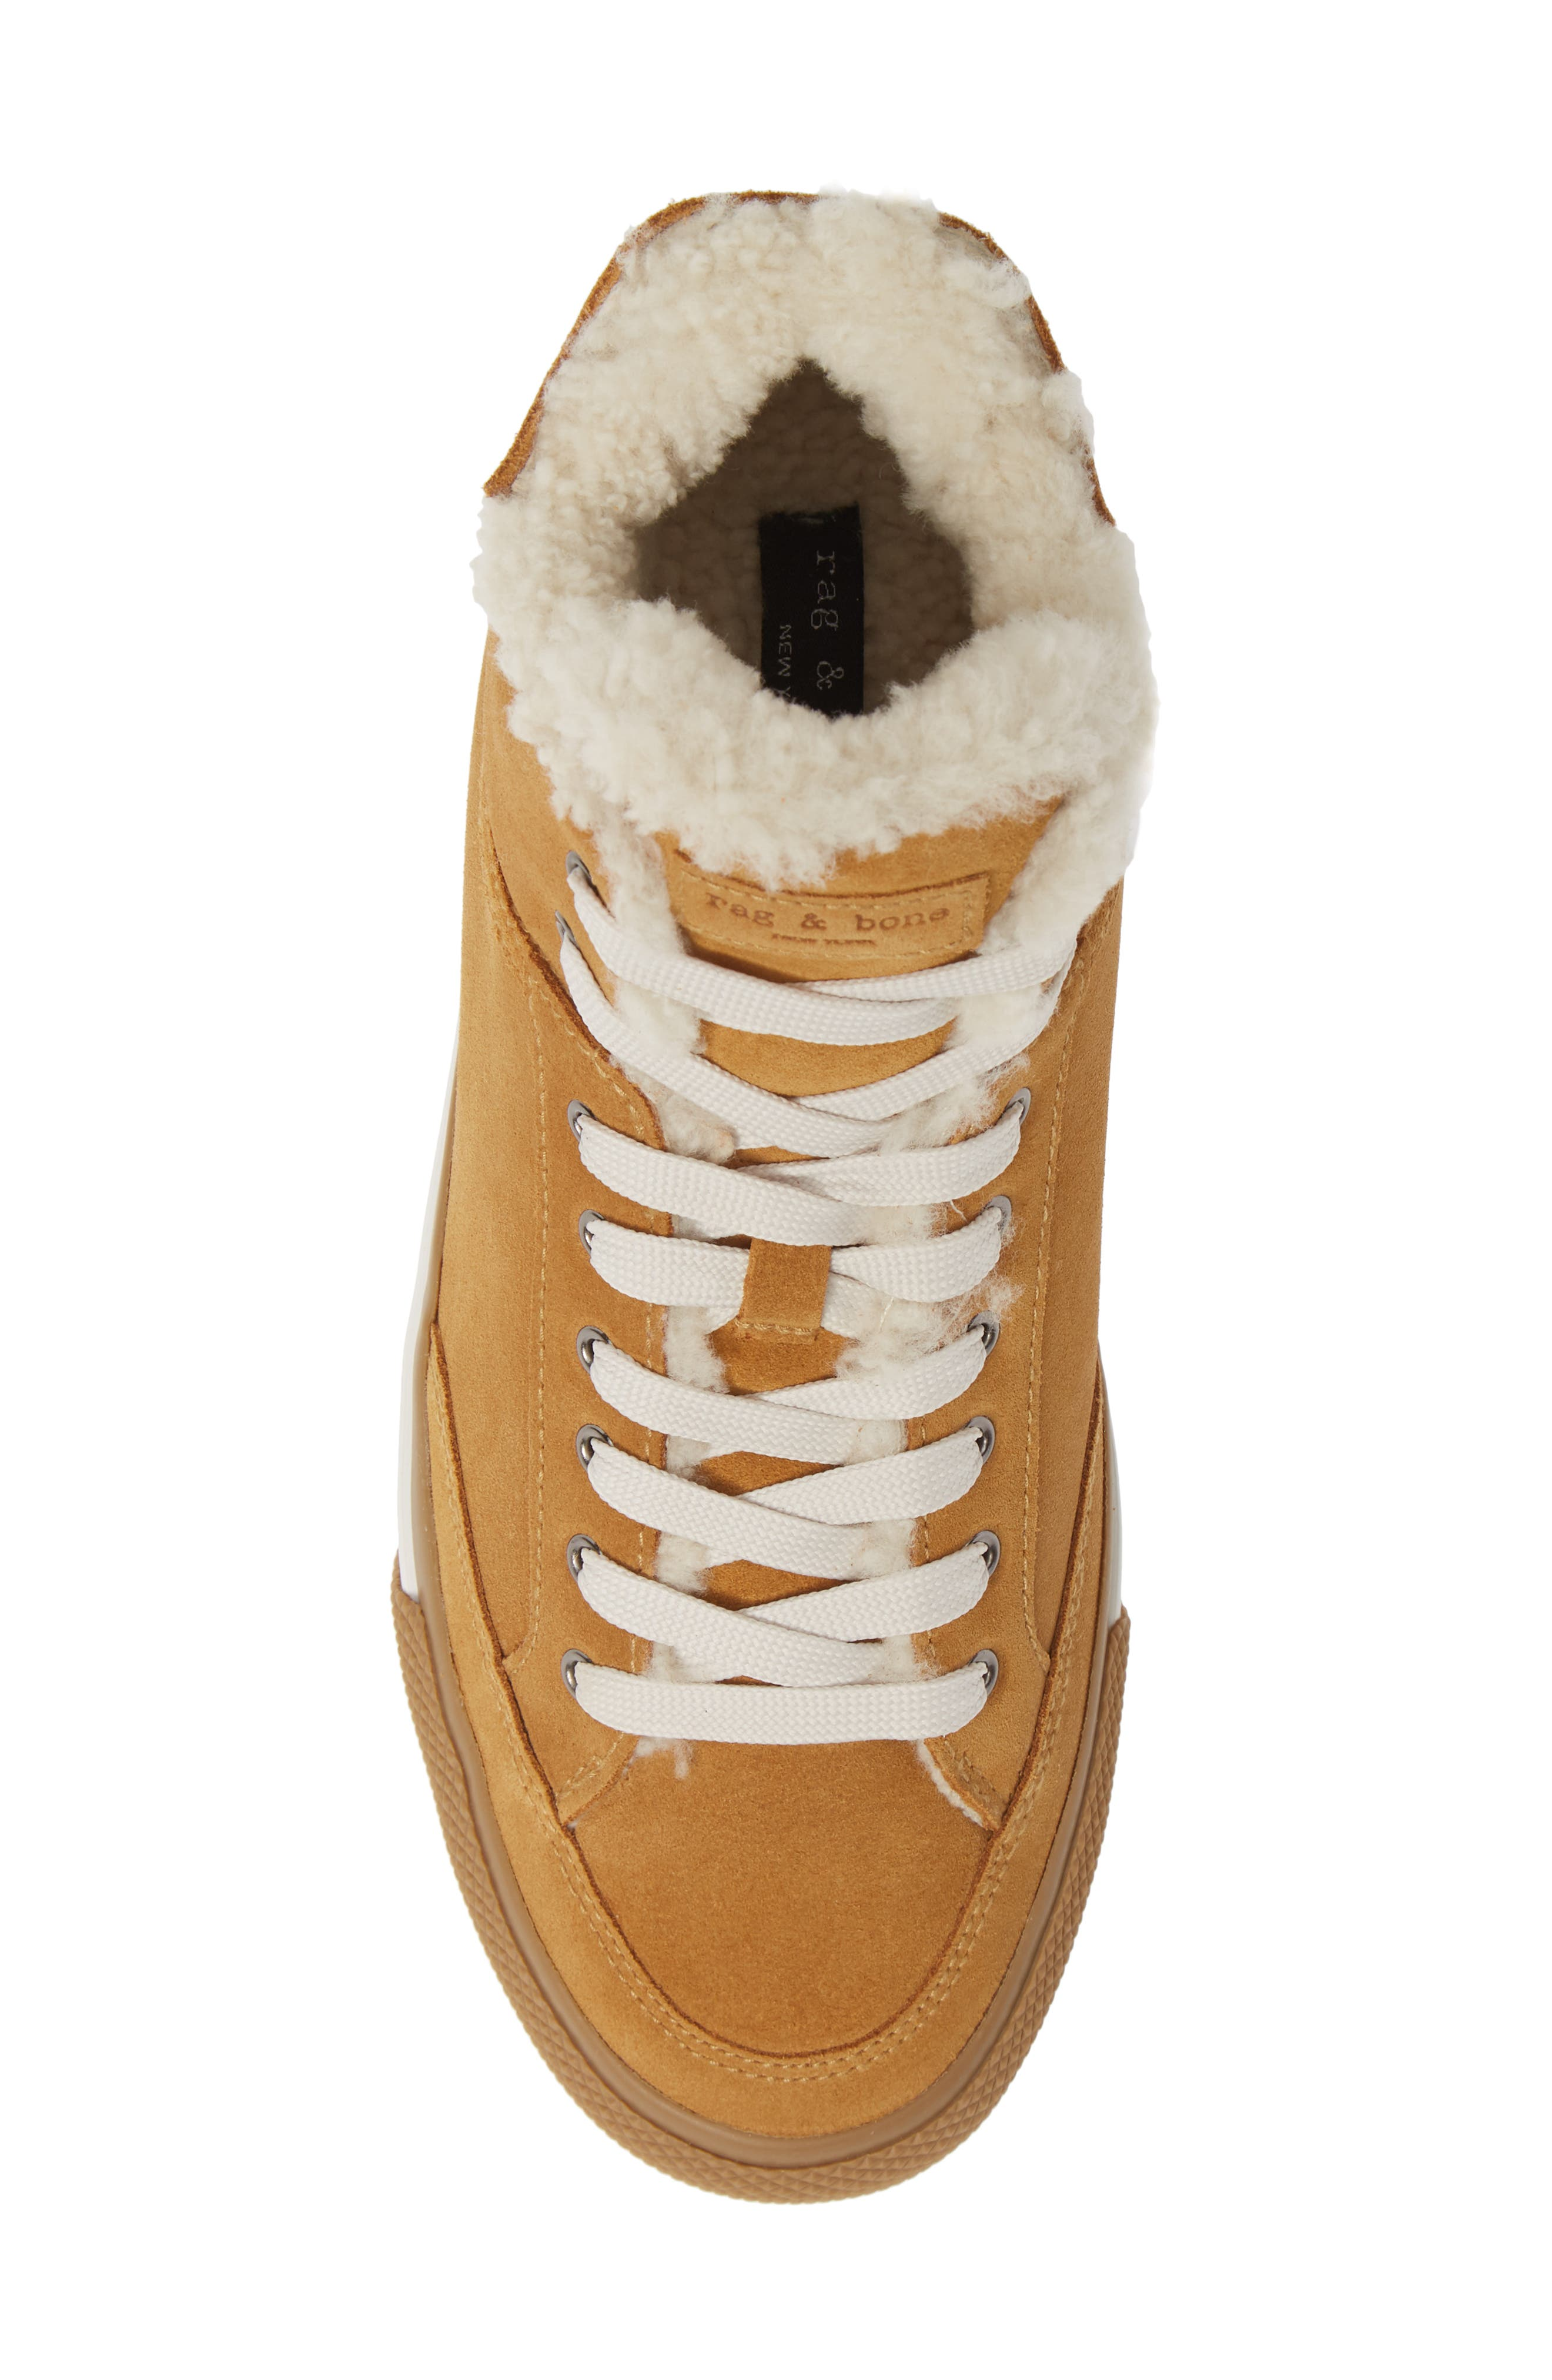 Army High Top Sneaker,                             Alternate thumbnail 5, color,                             OAK SUEDE